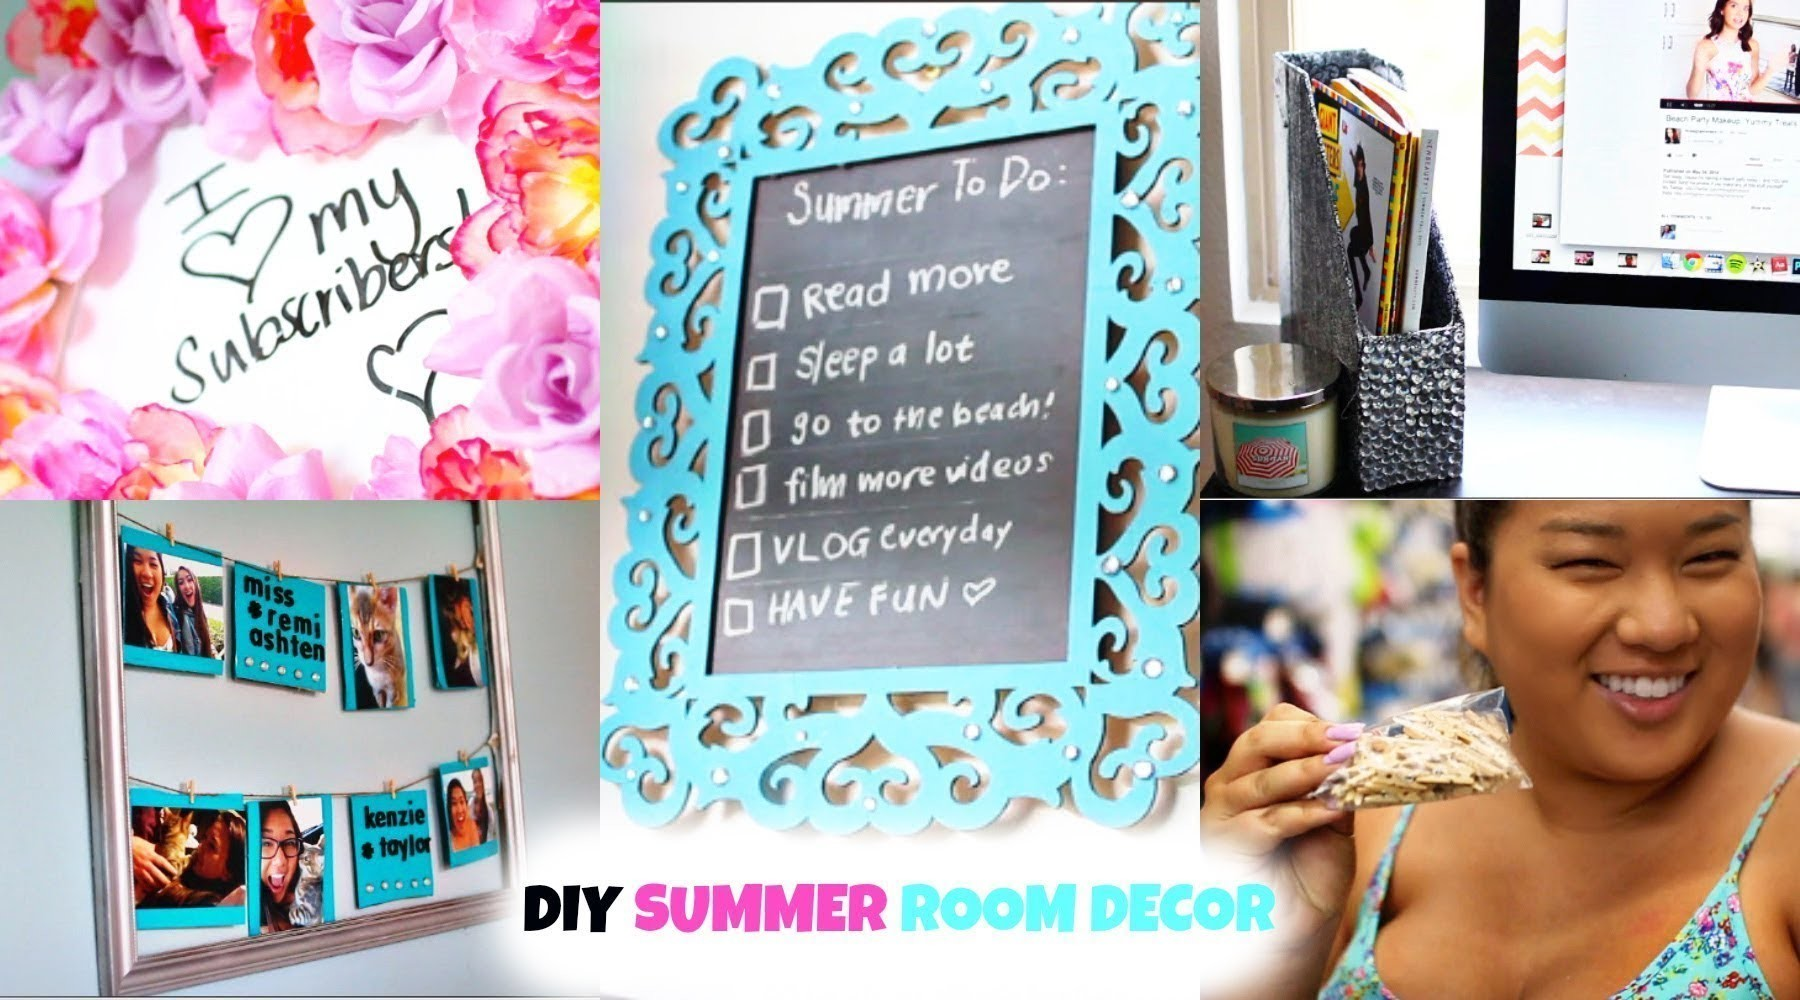 DIY SUMMER ROOM DECOR! Easy & Affordable! ♡ #DIYwithRemi